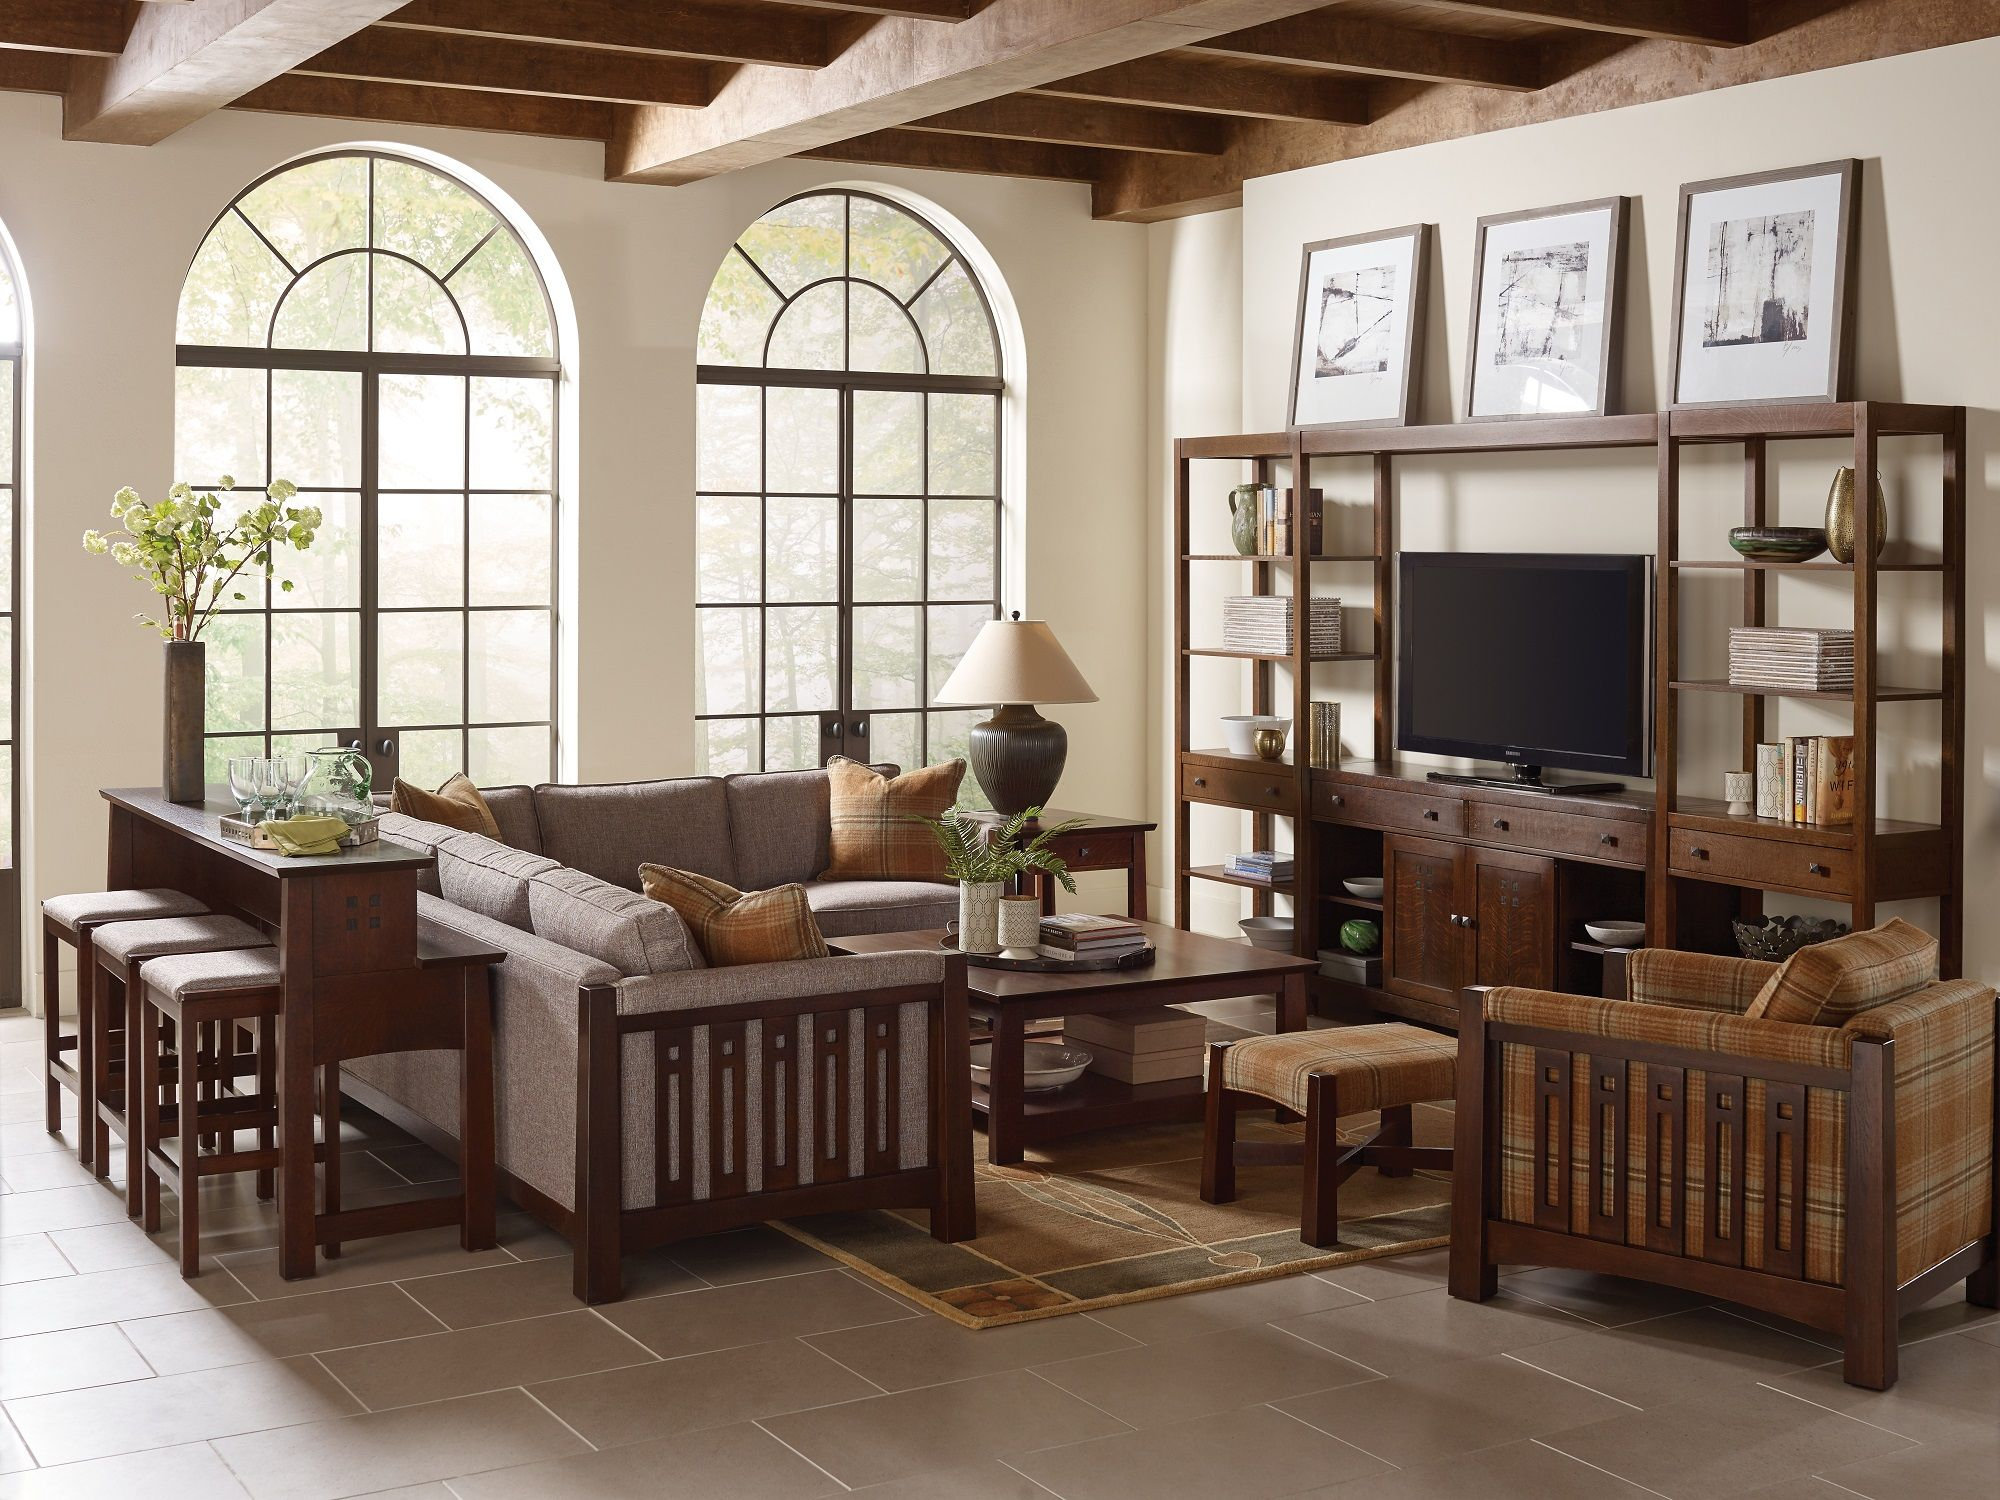 This stickley highlands sectional sofa blends the mission style stickley is famous for with modern upholstery creating a beautiful balance of the classic